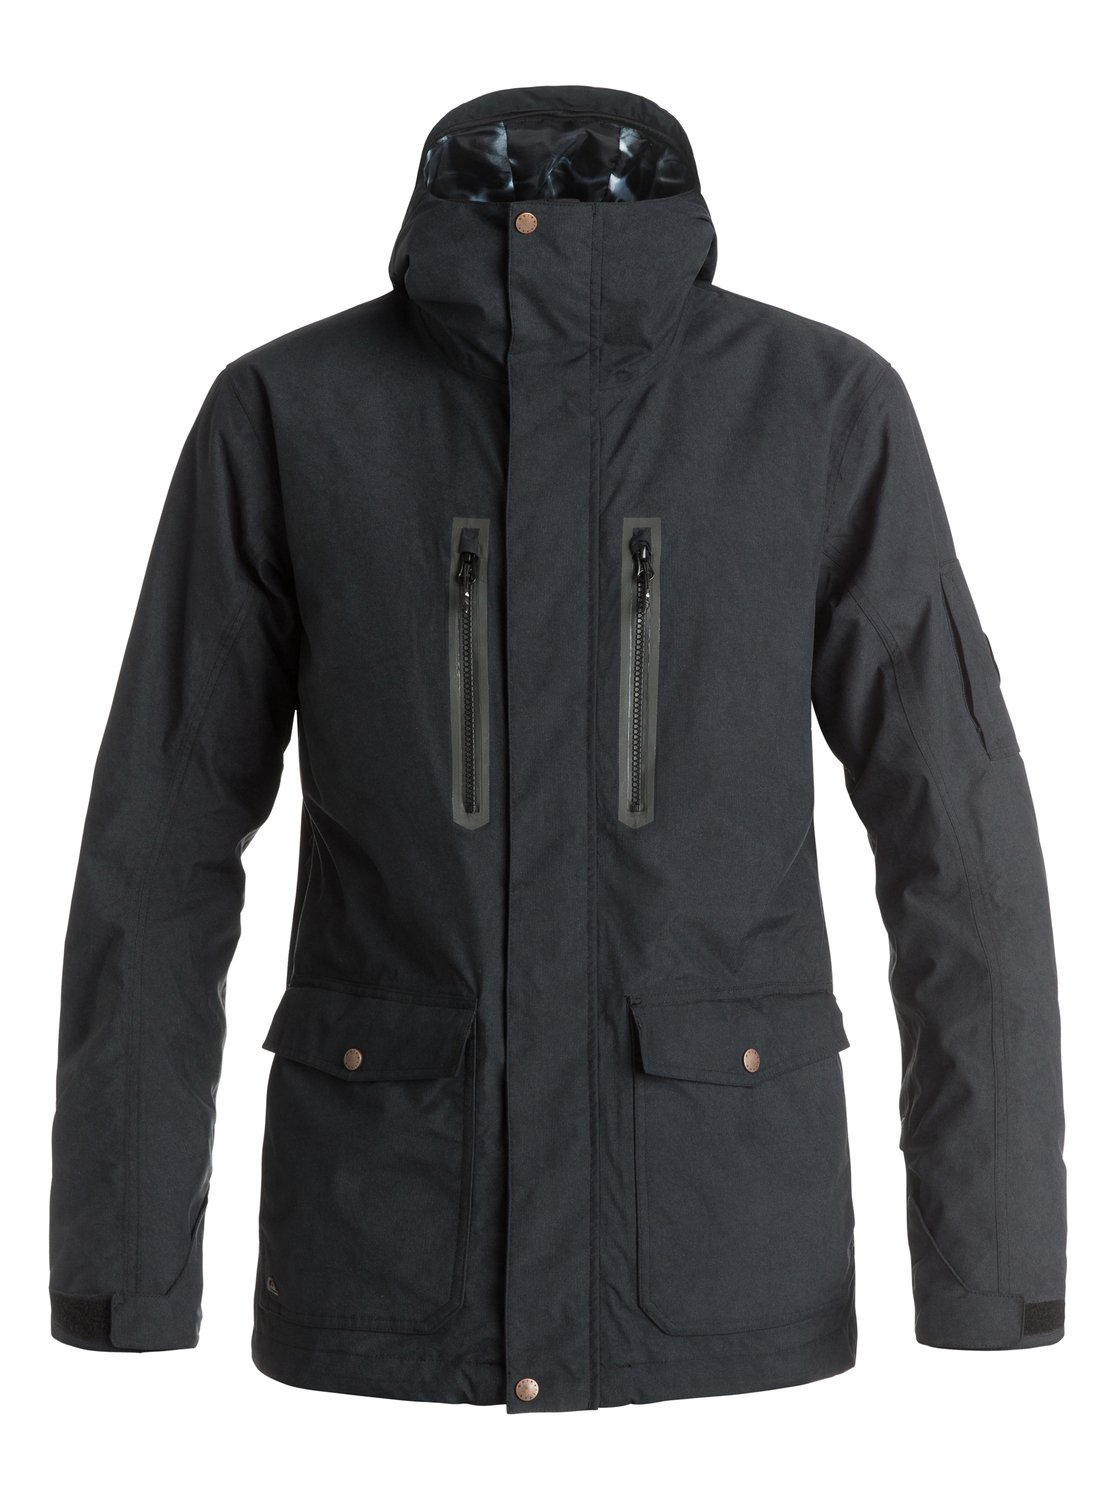 Сноубордическая куртка Dark And StormyWith a versatile modern look influenced by urban styles, the Dark And Stormy snow jackets longer, straighter cut has been tailored with 15K Quiksilver DryFlight® technology for durable waterproofing in wet and snowy conditions. Featuring 3M® Thinsulates® Type M insulation for powerful bulk-free warmth, the fully-sealed seams offer all-over protection and mesh lined underarm vents let you refresh when your temperature rises.<br>